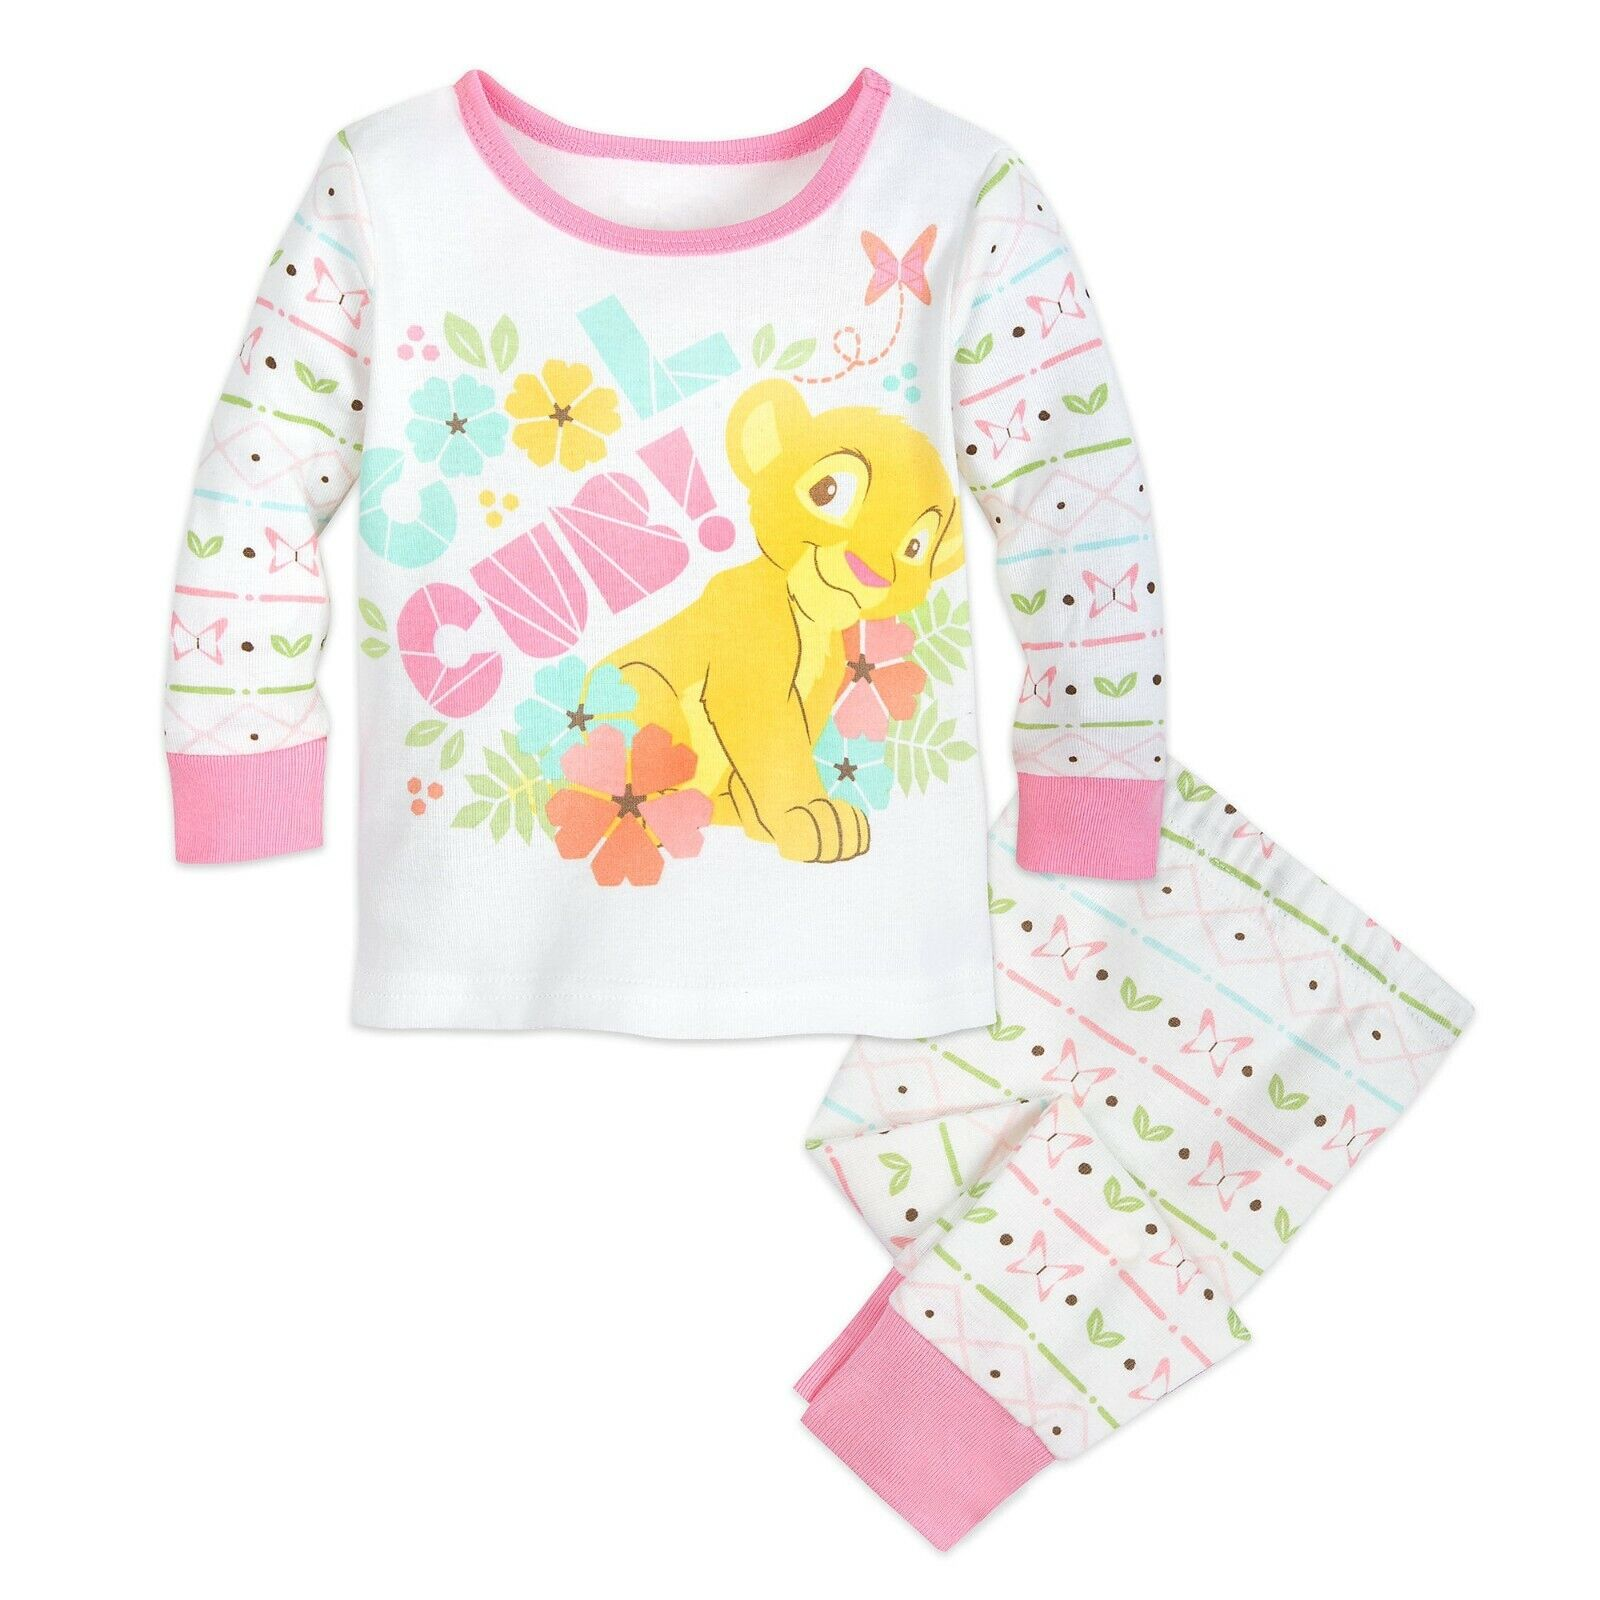 DISNEY DAISY DUCK DONALD DUCK 3 PIECE BABY OUTFIT SIZE NB 3 6 9 12 24 MONTHS NEW